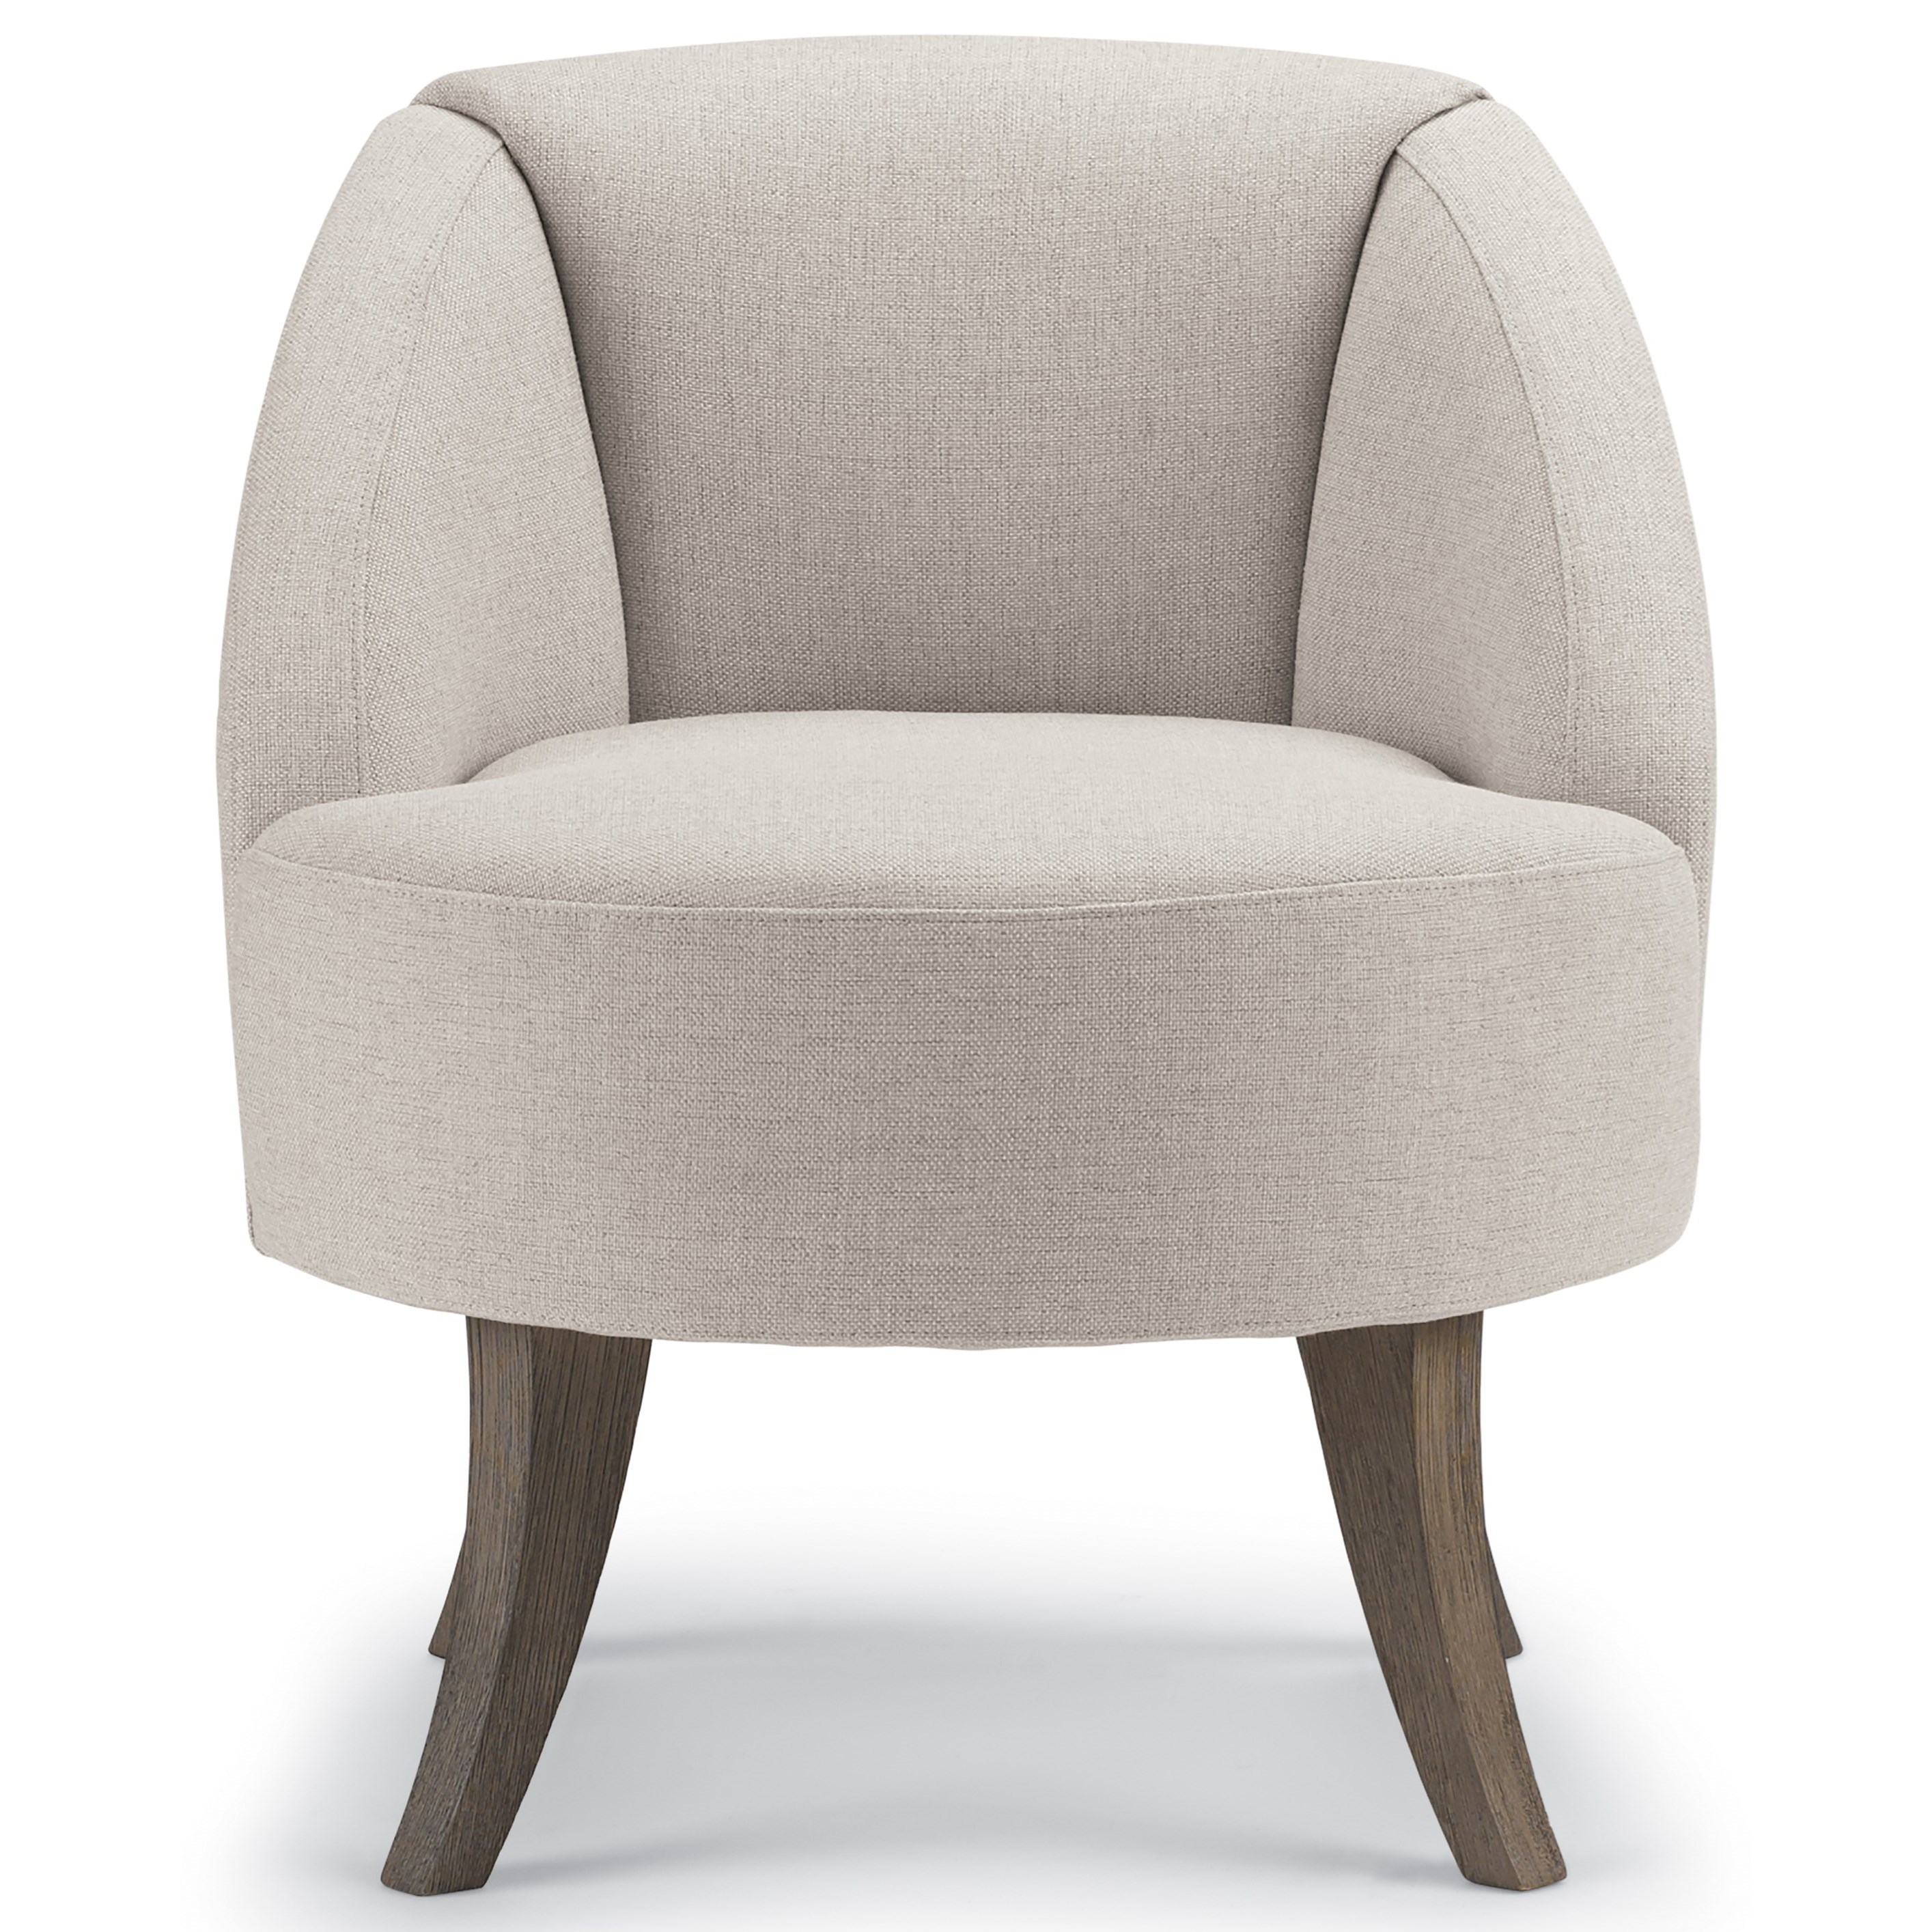 Best Xpress - Hylant Swivel Barrel Chair by Best Home Furnishings at Rooms and Rest